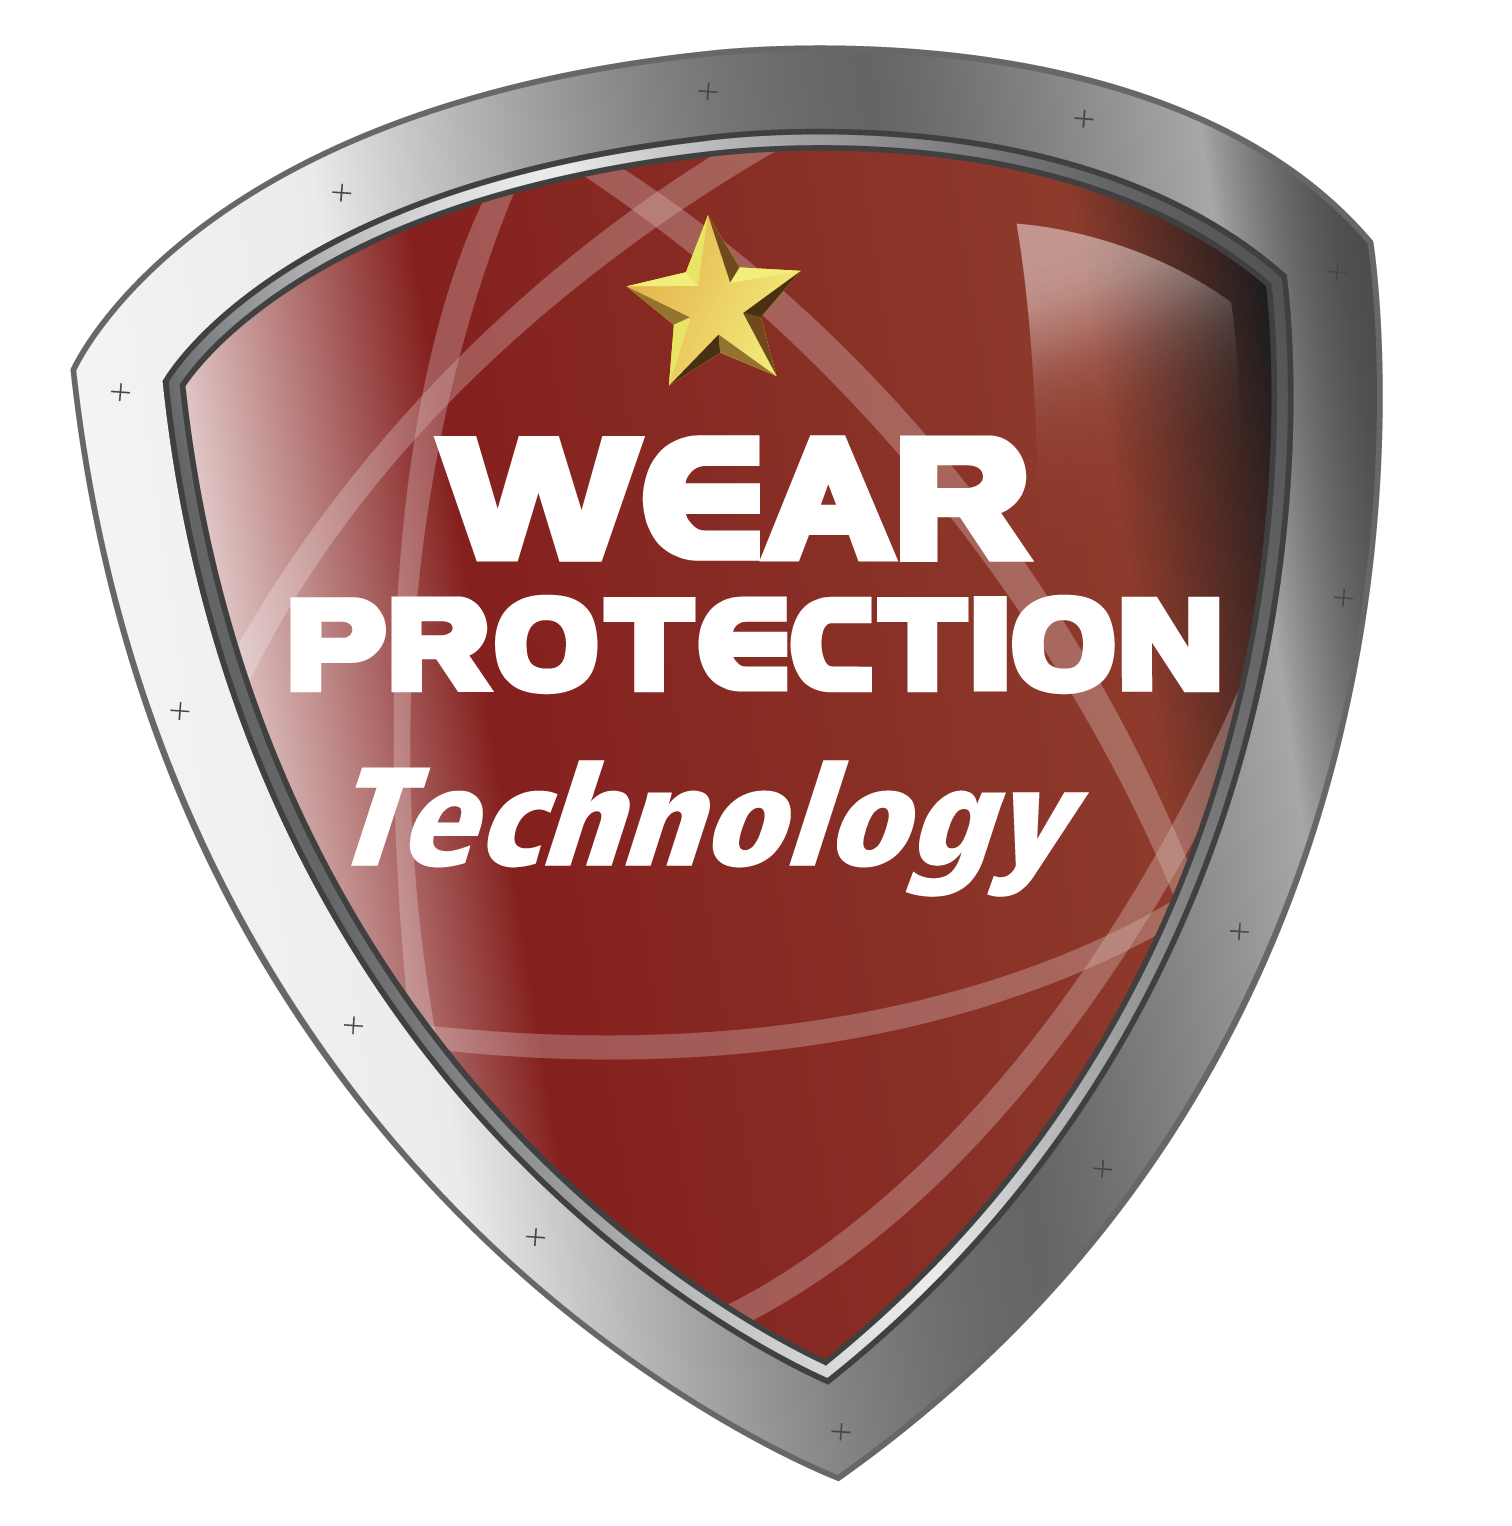 Wear Protection Technology